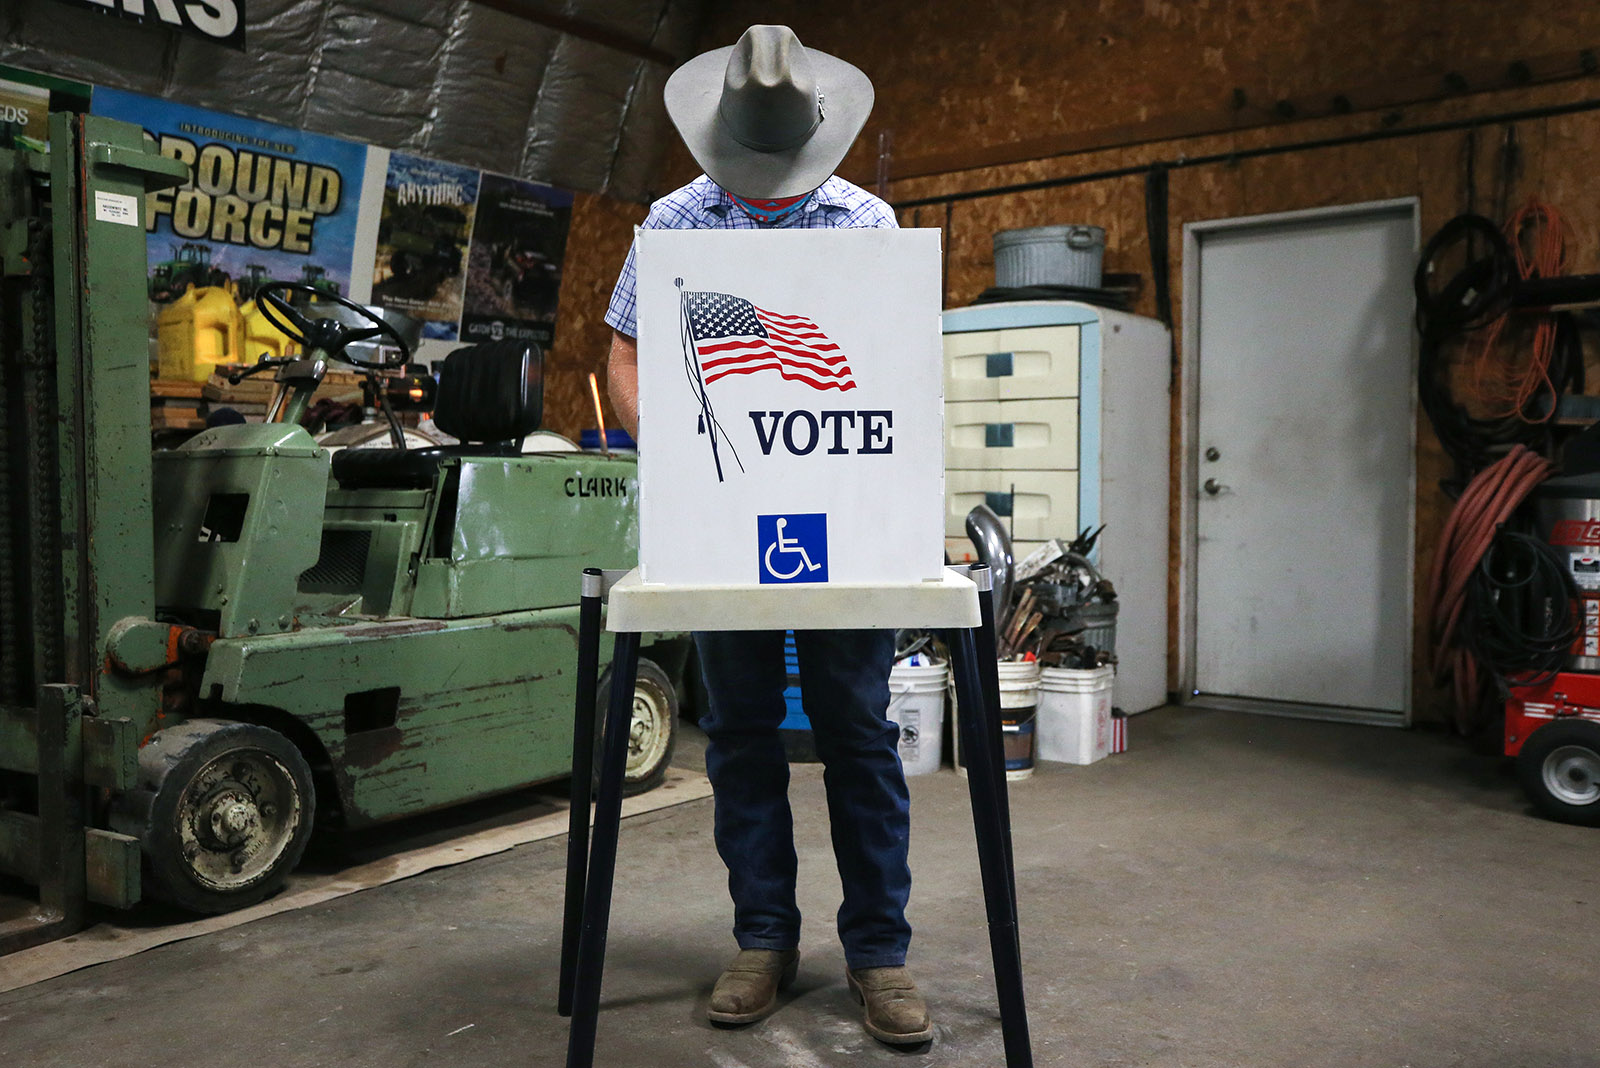 A voter marks his ballot at a polling place in Dennis Wilkening's shed on November 3, in Richland, Iowa.